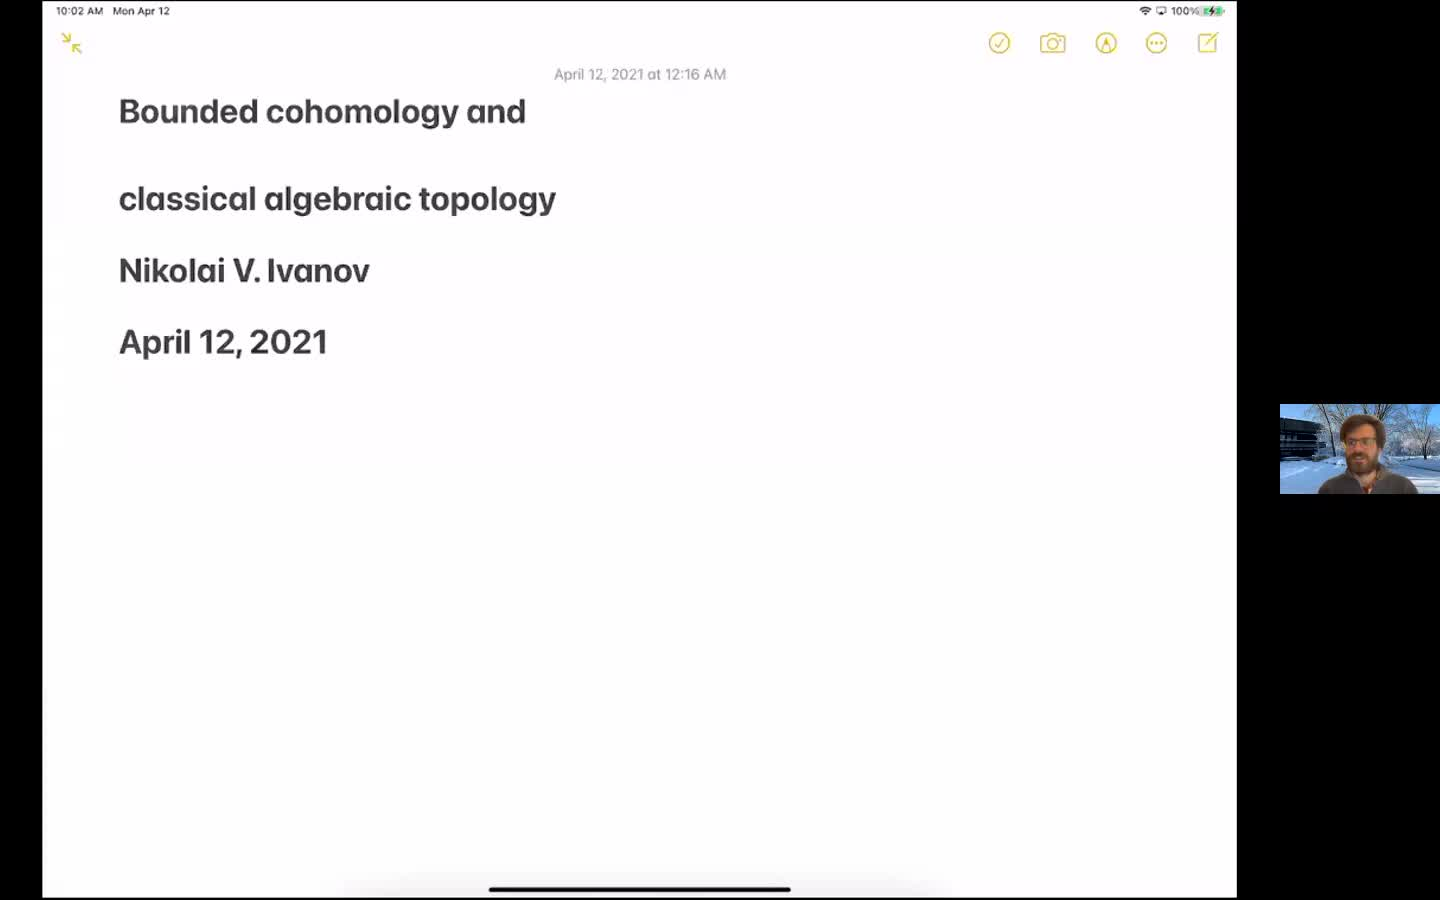 Bounded cohomology and classical algebraic topology